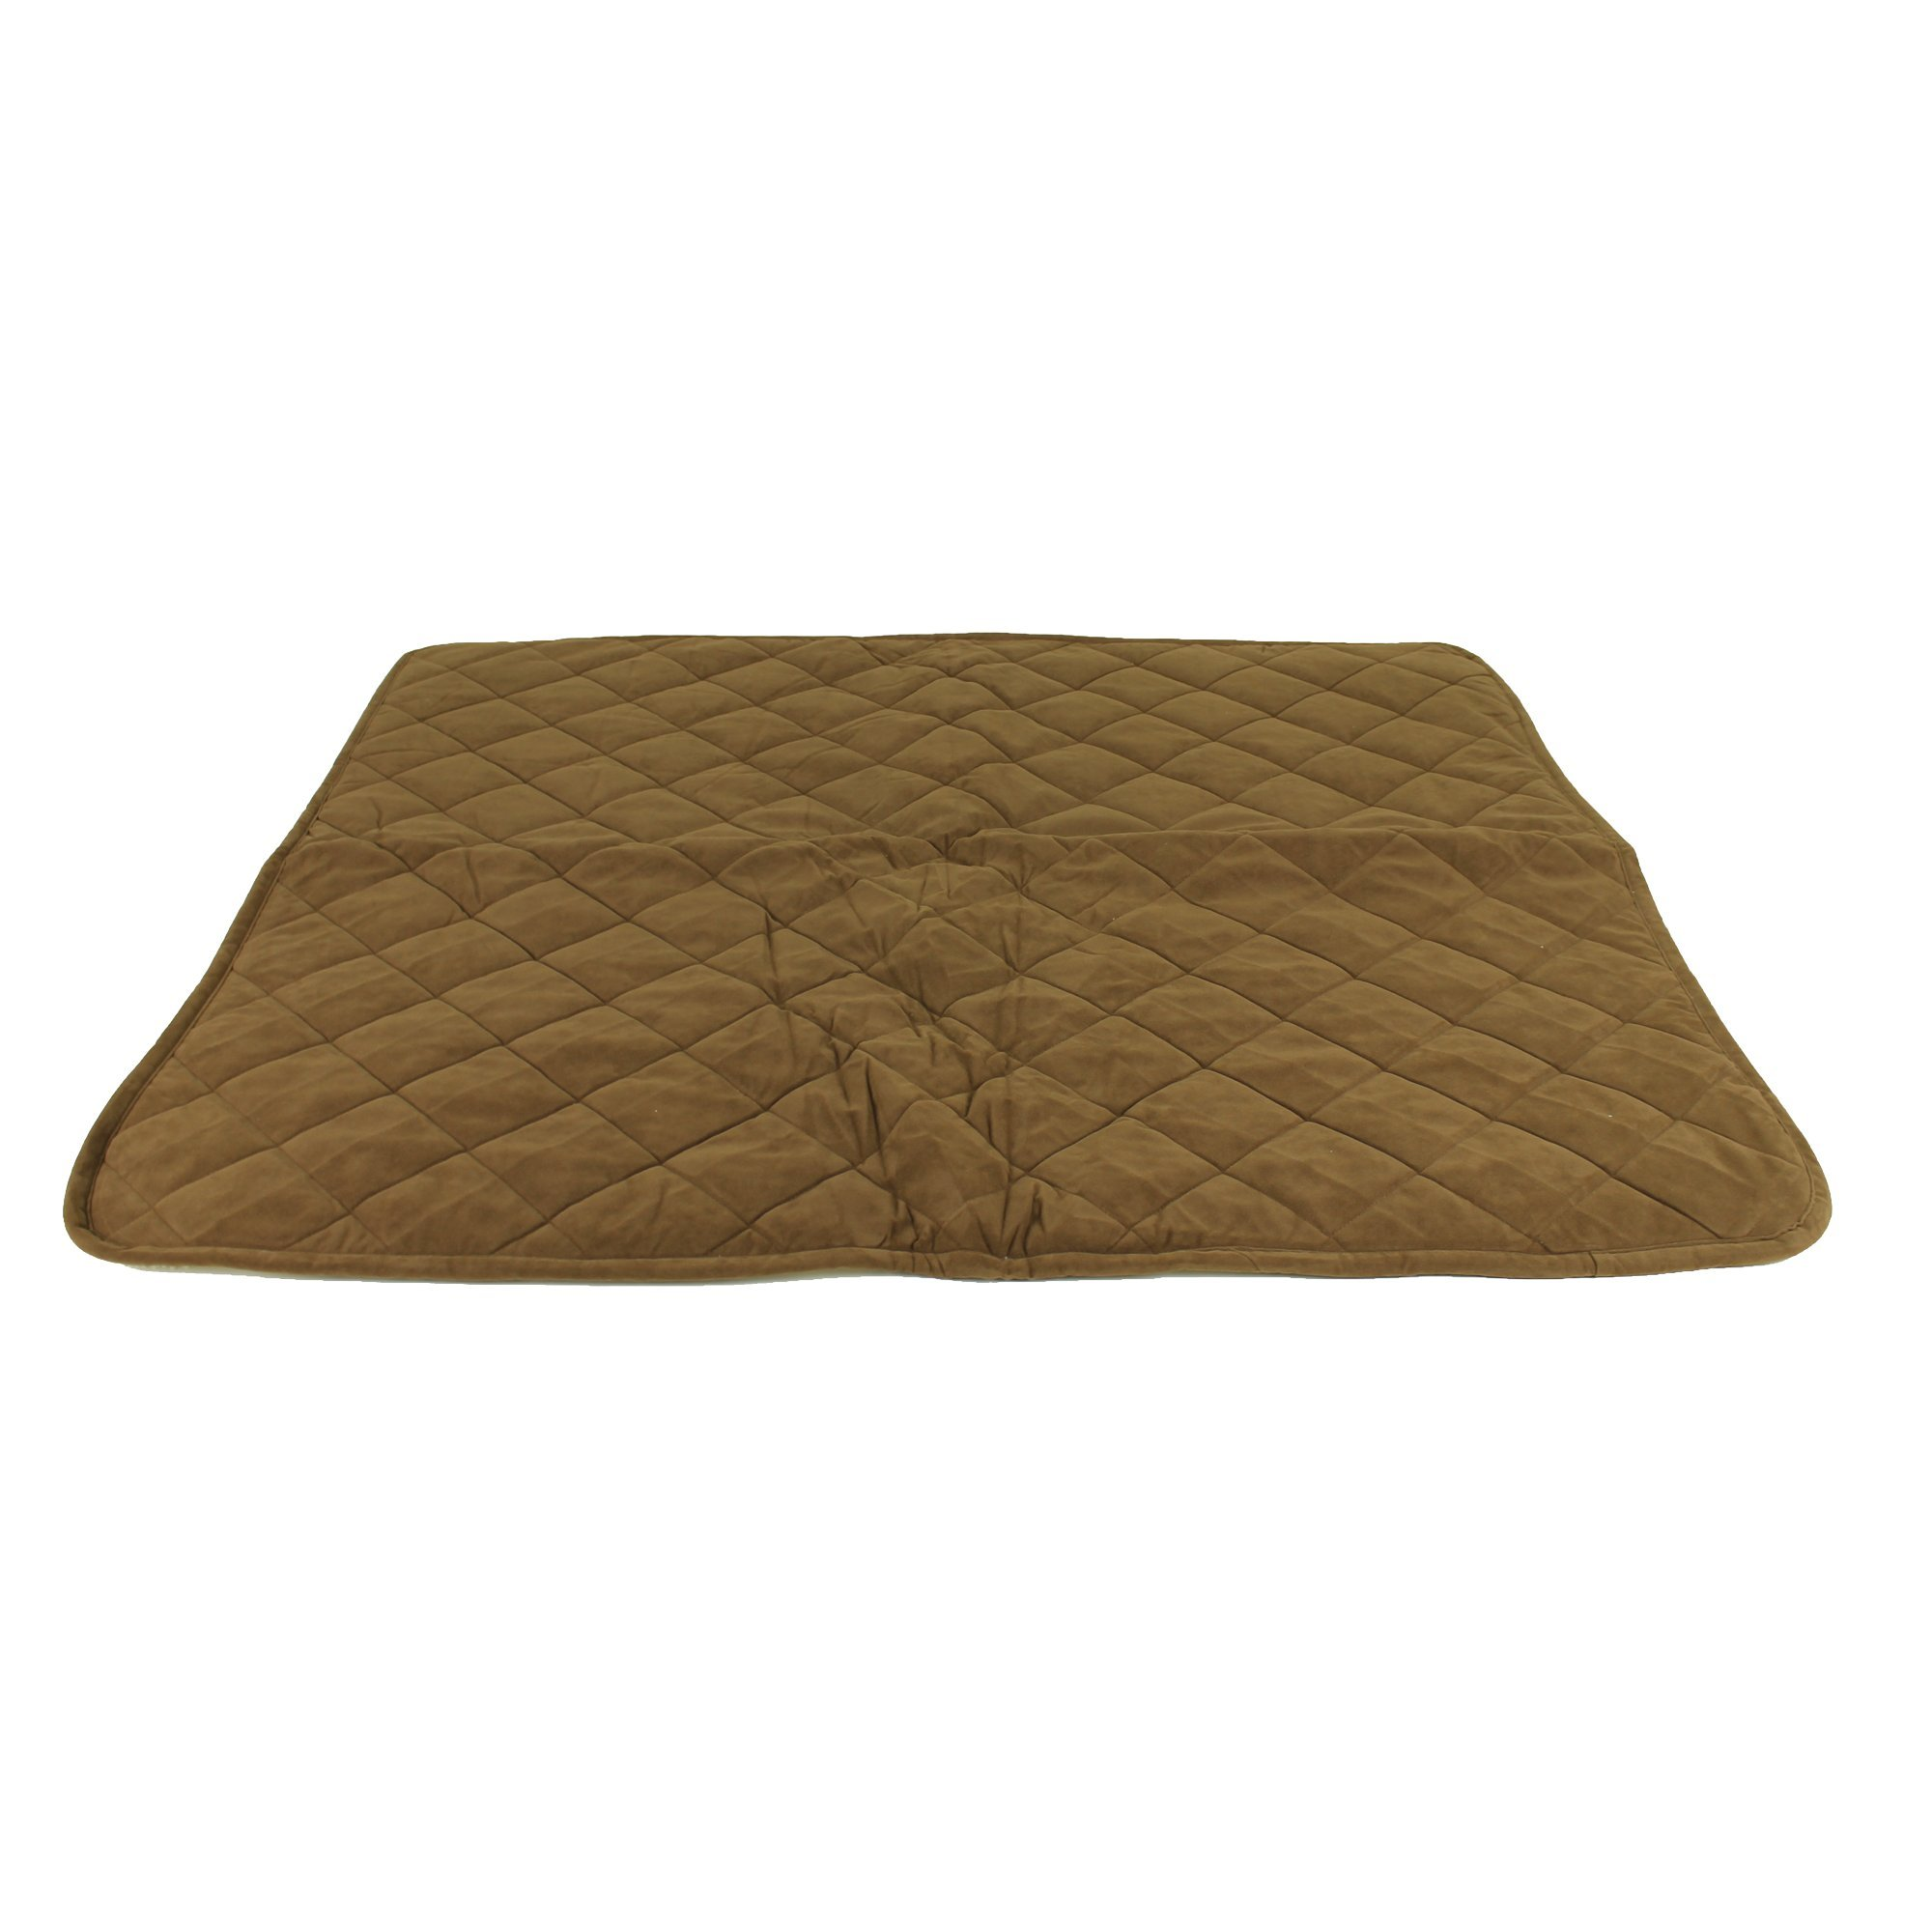 CPC Reversible Sherpa/Quilted Microfiber Throw for Pets, 48-Inch, Chocolate